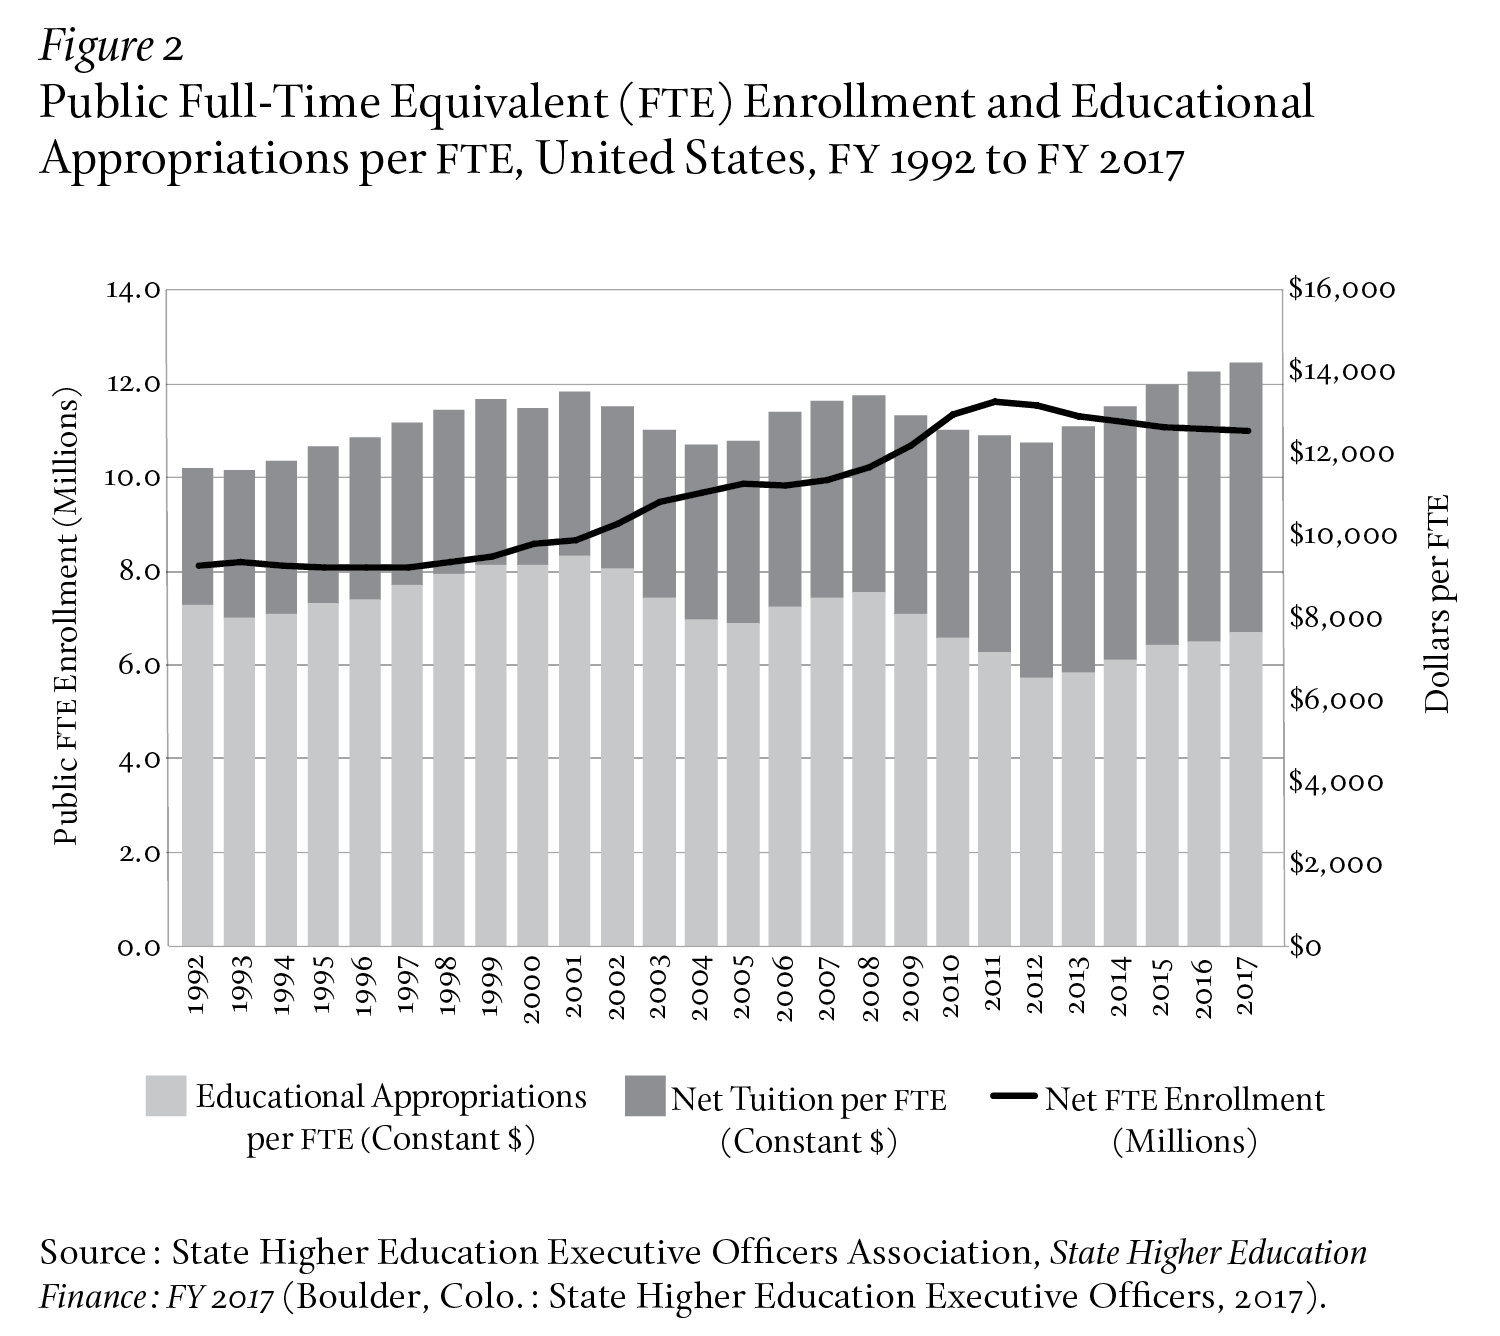 Public Full-Time Equivalent (FTE) Enrollment and Educational Appropriations per FTE, United States, FY 1992 to FY 2017